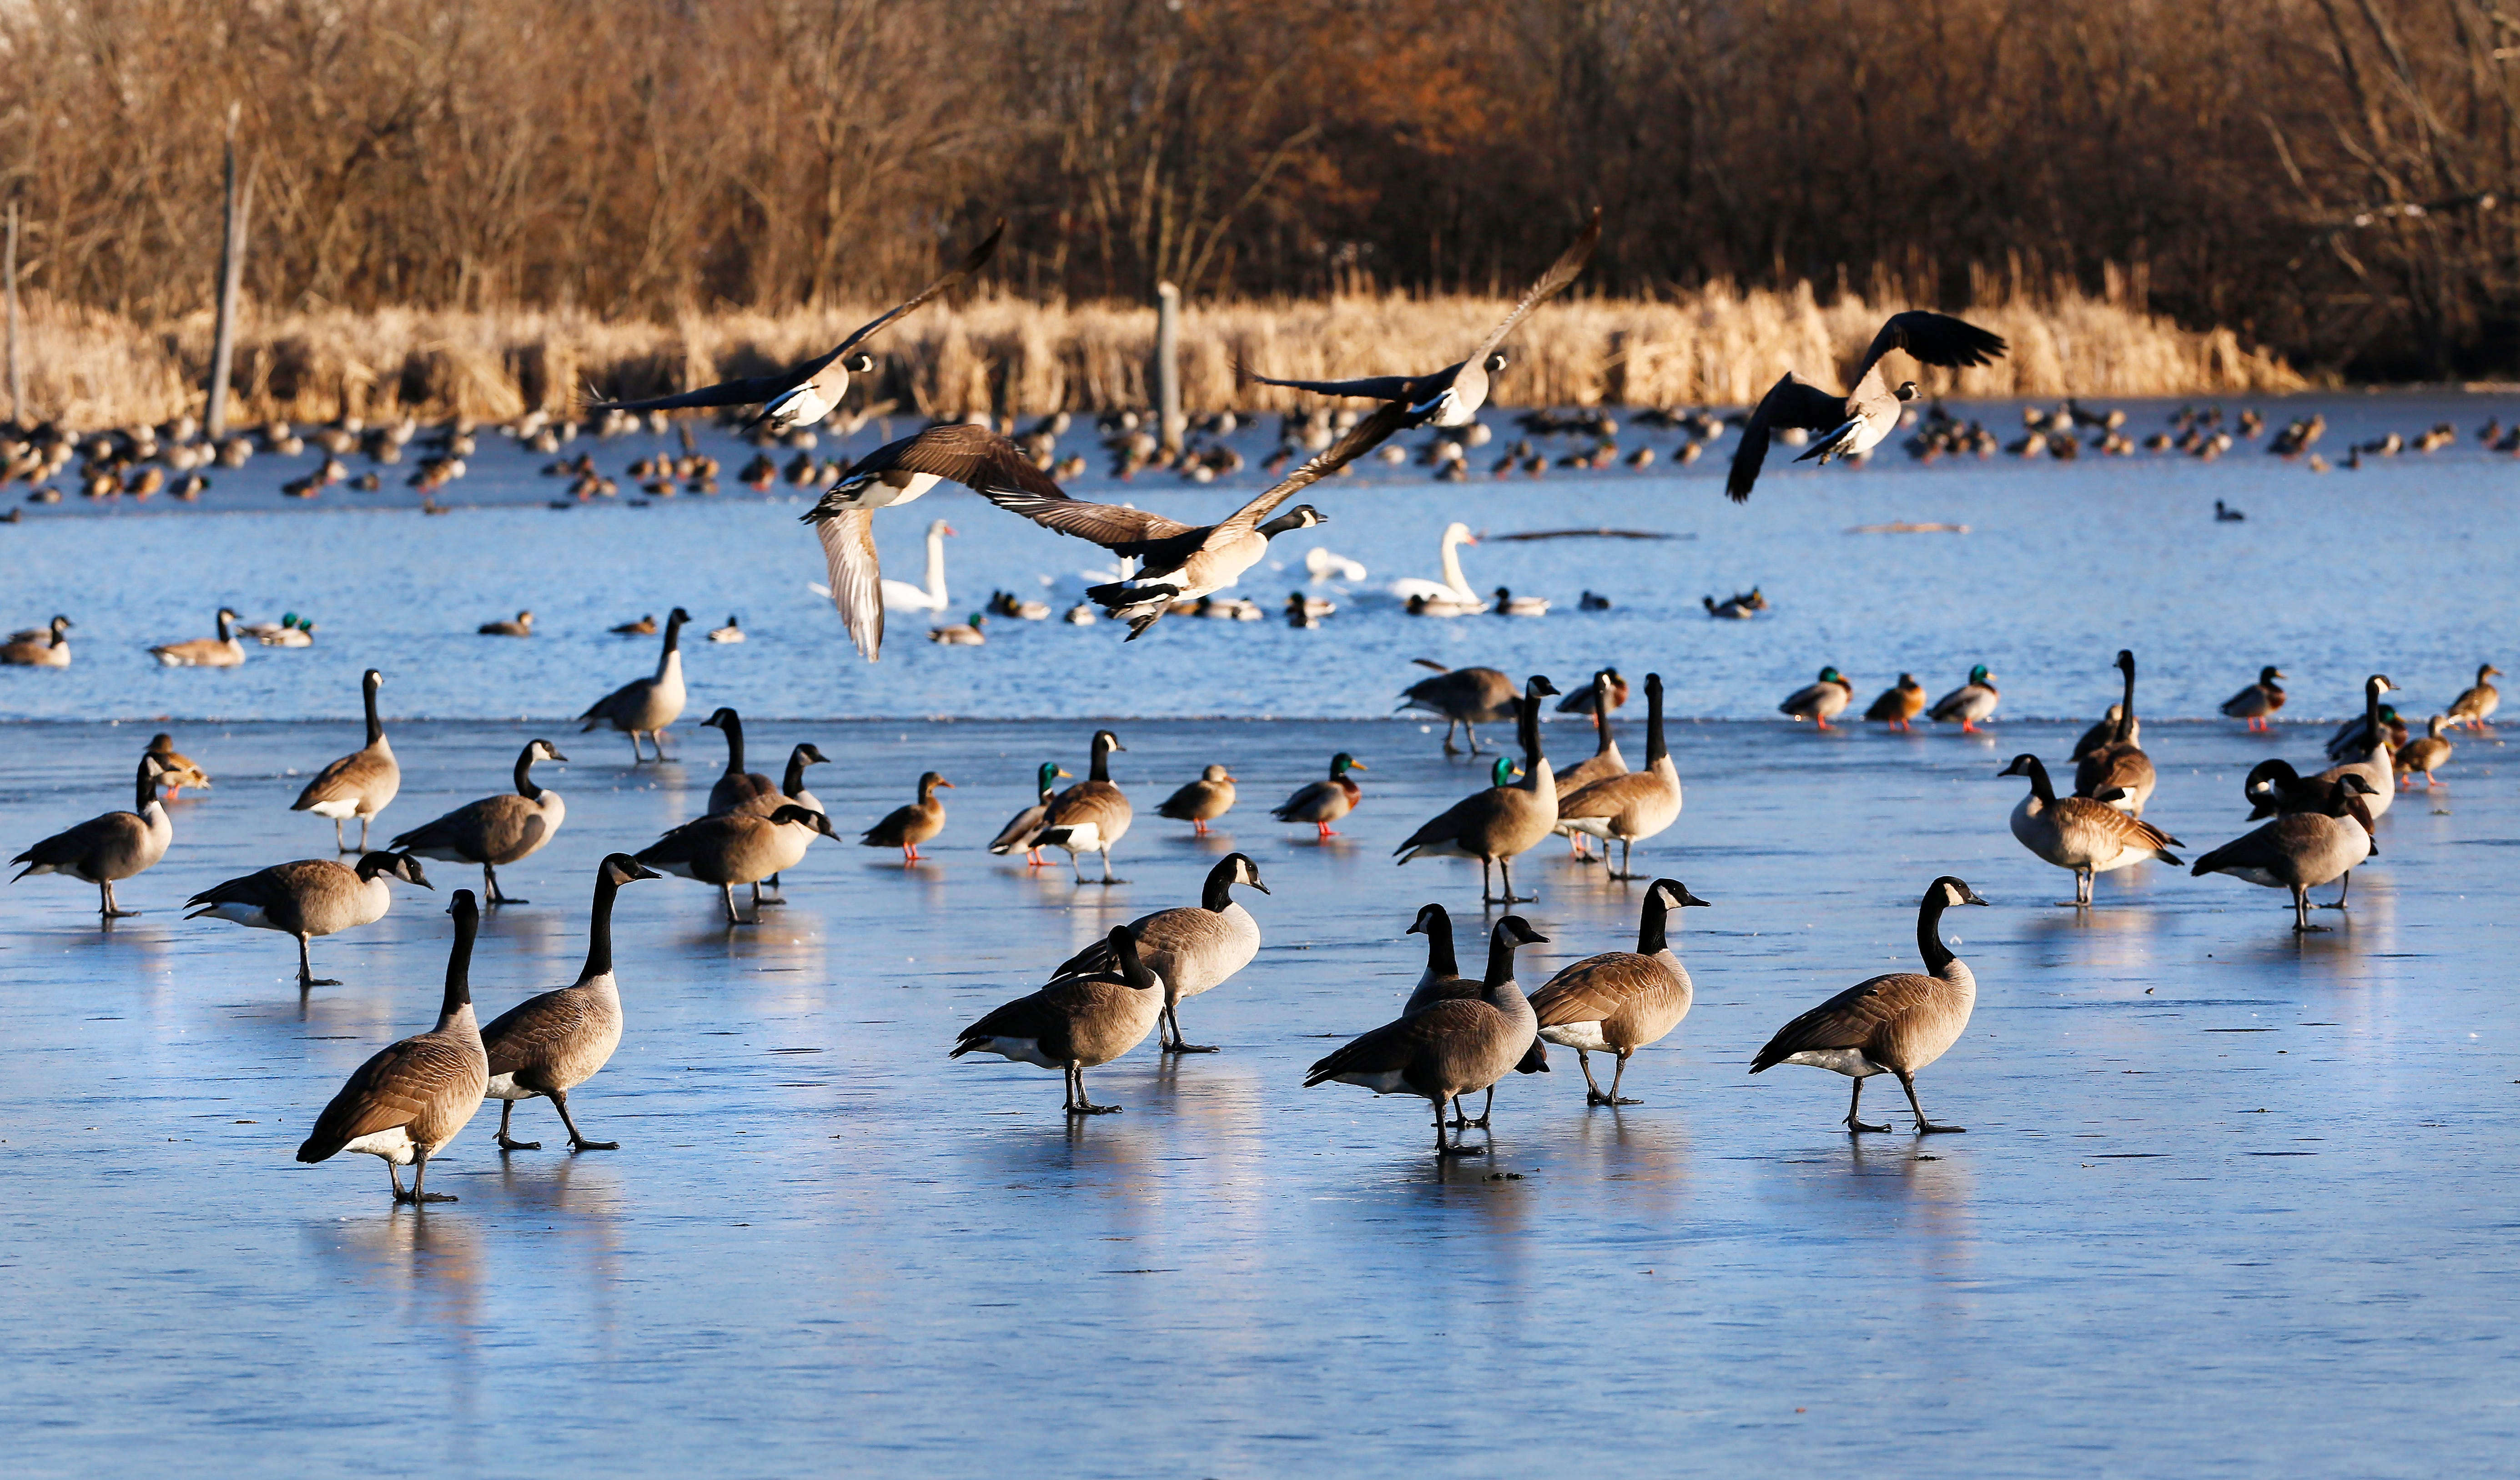 Canada geese, Mallard ducks, swans and other waterfowl gather.